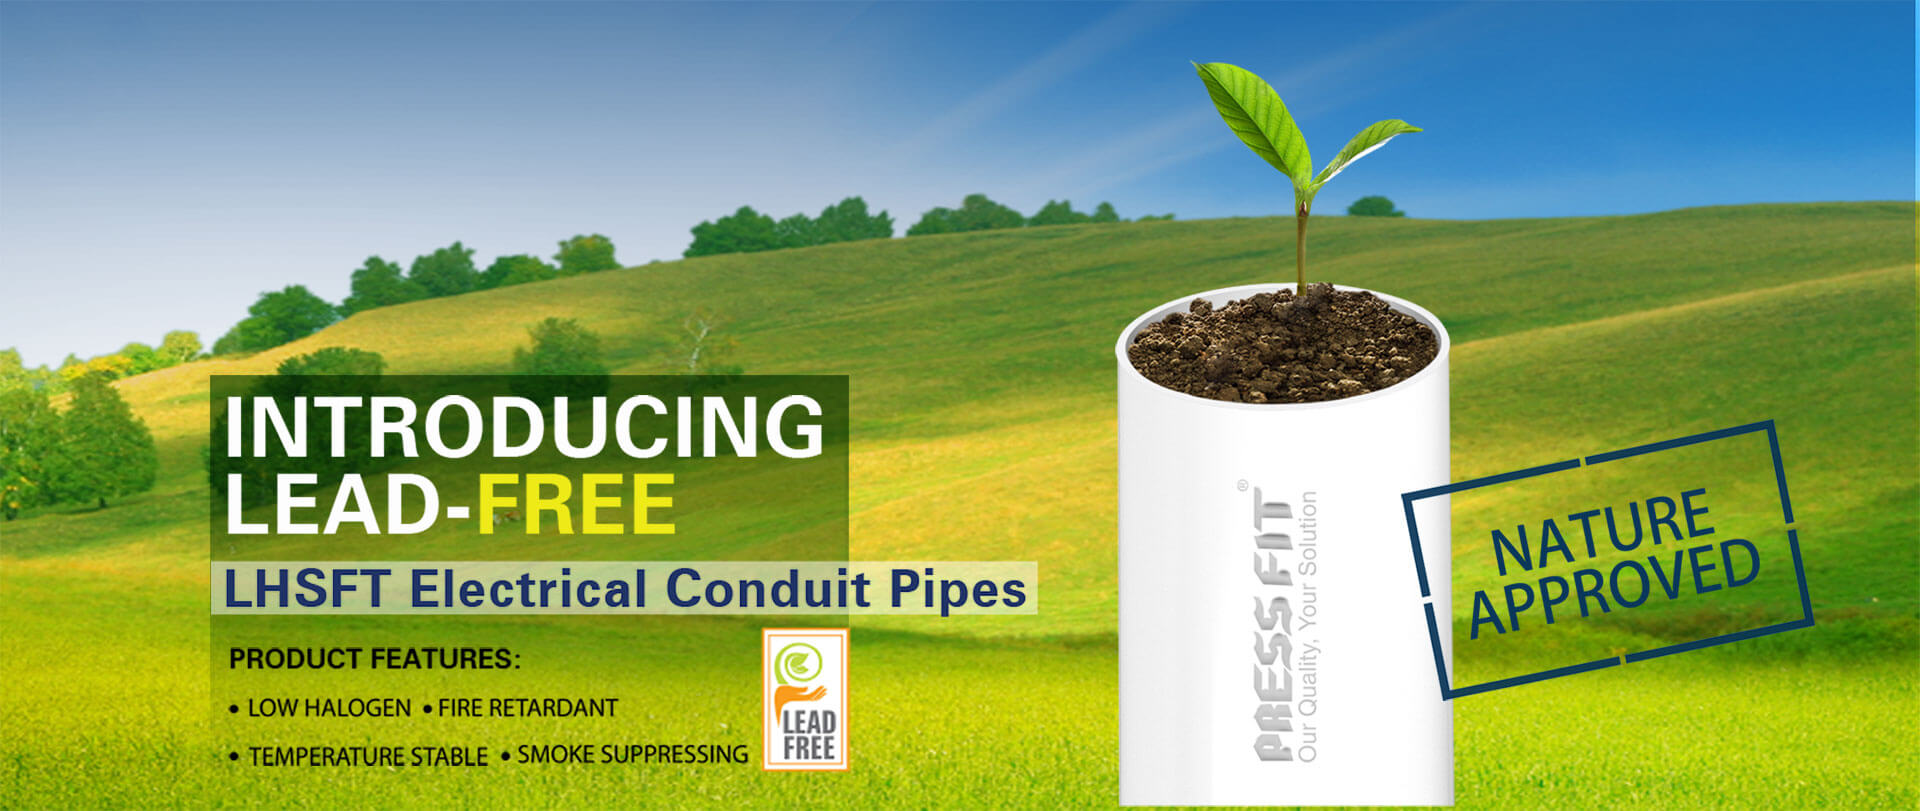 Press Fit Electrical Conduit Pipes which are lead free and also nature approved which you need for your home or office.